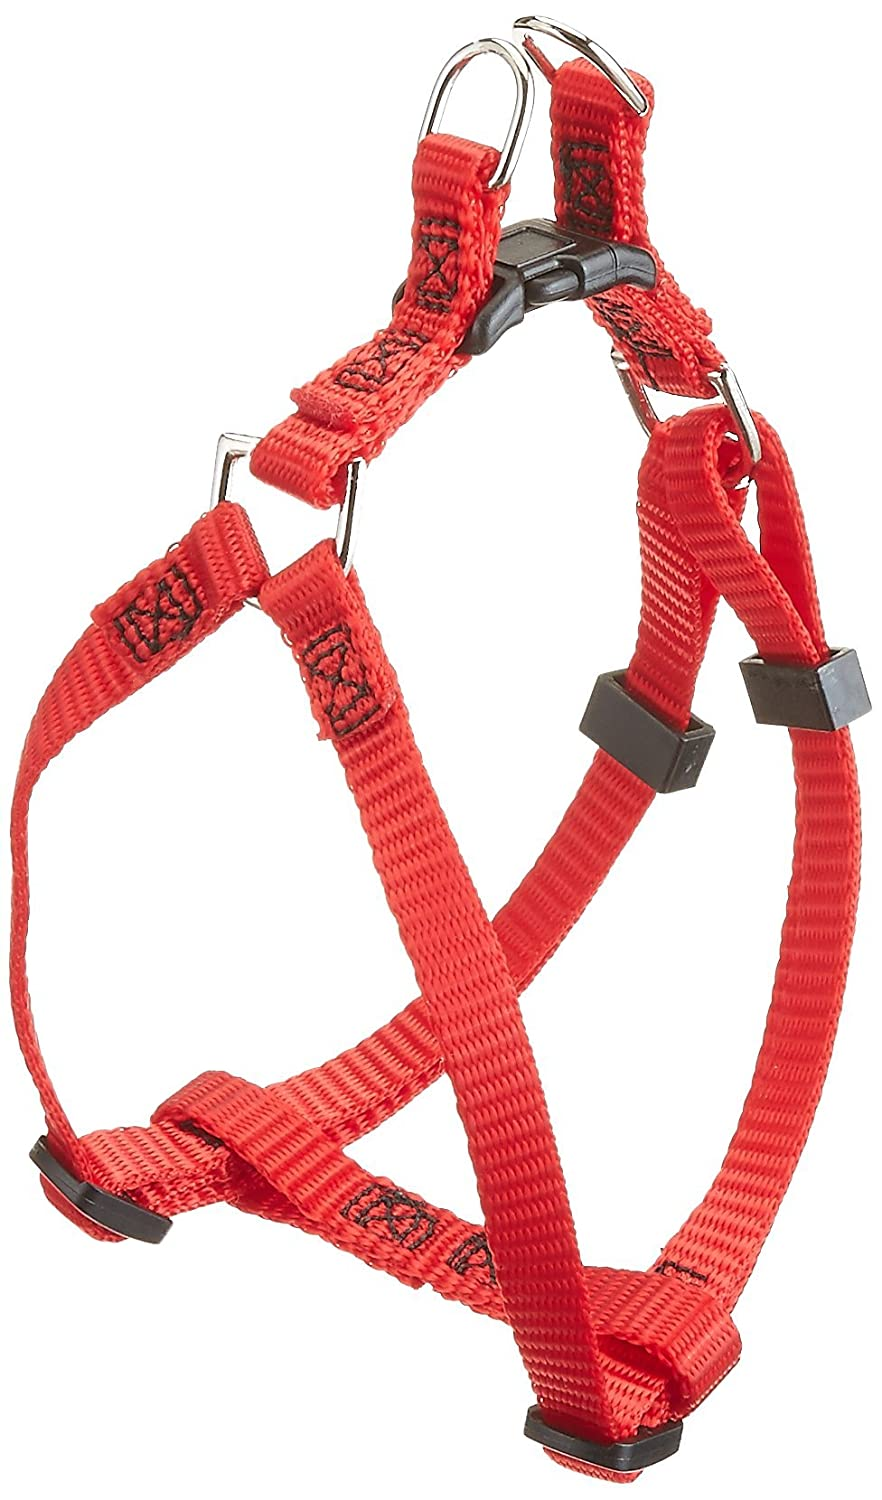 Red Small Red Small Majestic Pet 9-Inch to 15-Inch Step In Harness, Red, Small, 10-45-Pounds dog